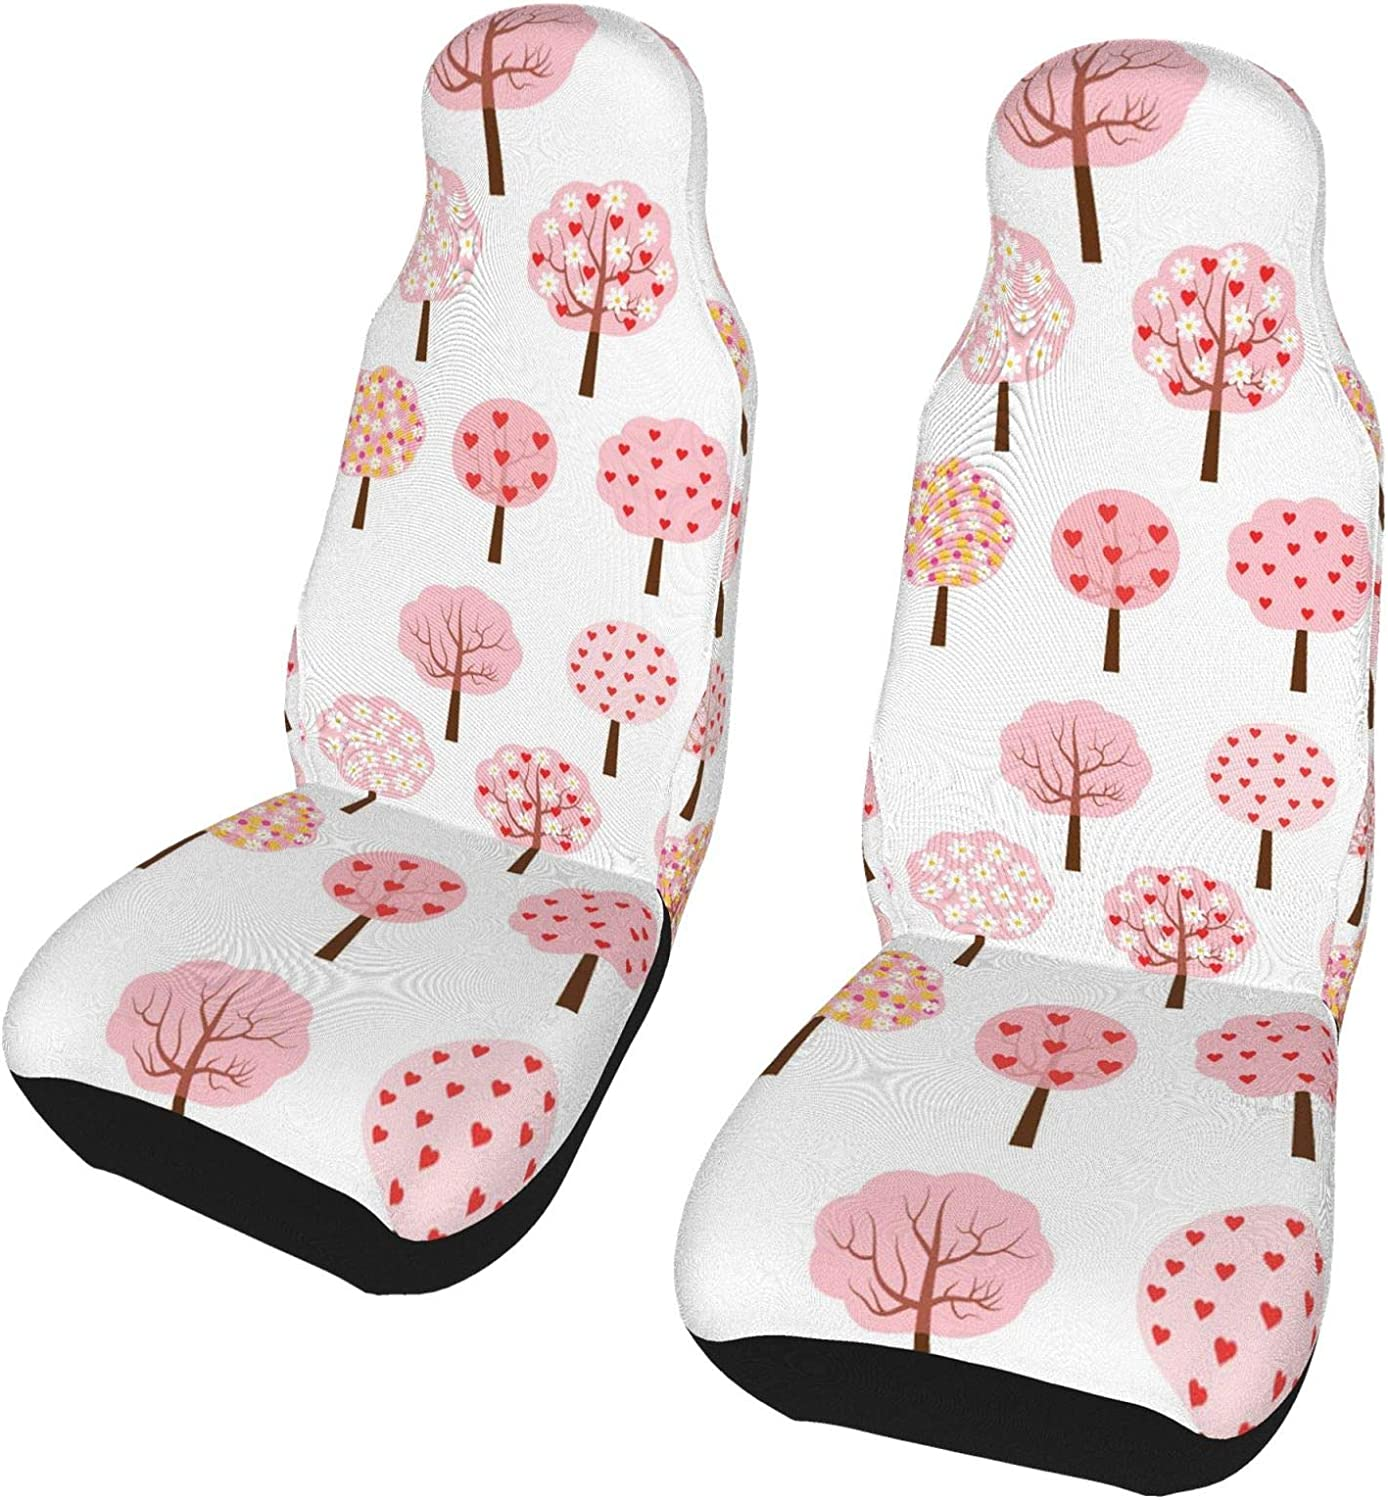 REDDATES Pink Heart Tree Car Inventory cleanup selling sale Front Seat Our shop most popular Protecto Seats Cover